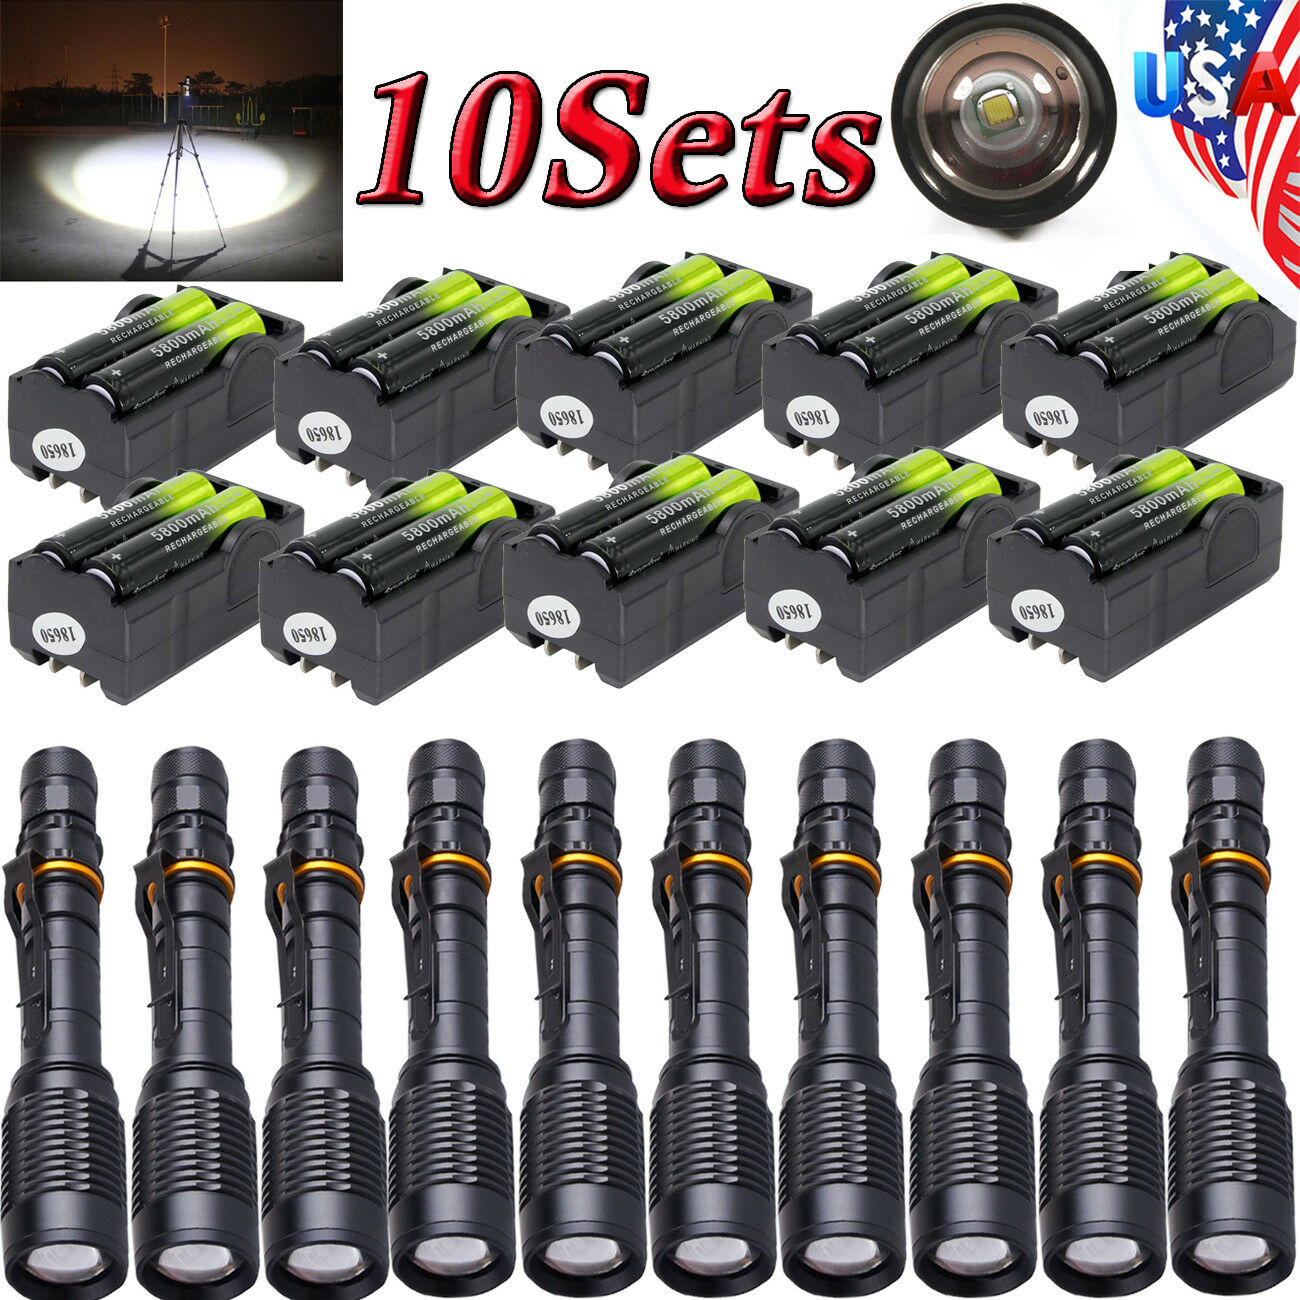 10Sets T6LED 50000LM Zoomable 5Modes Durable Flashlight  Lamp Torch+18650+Charger  outlet online